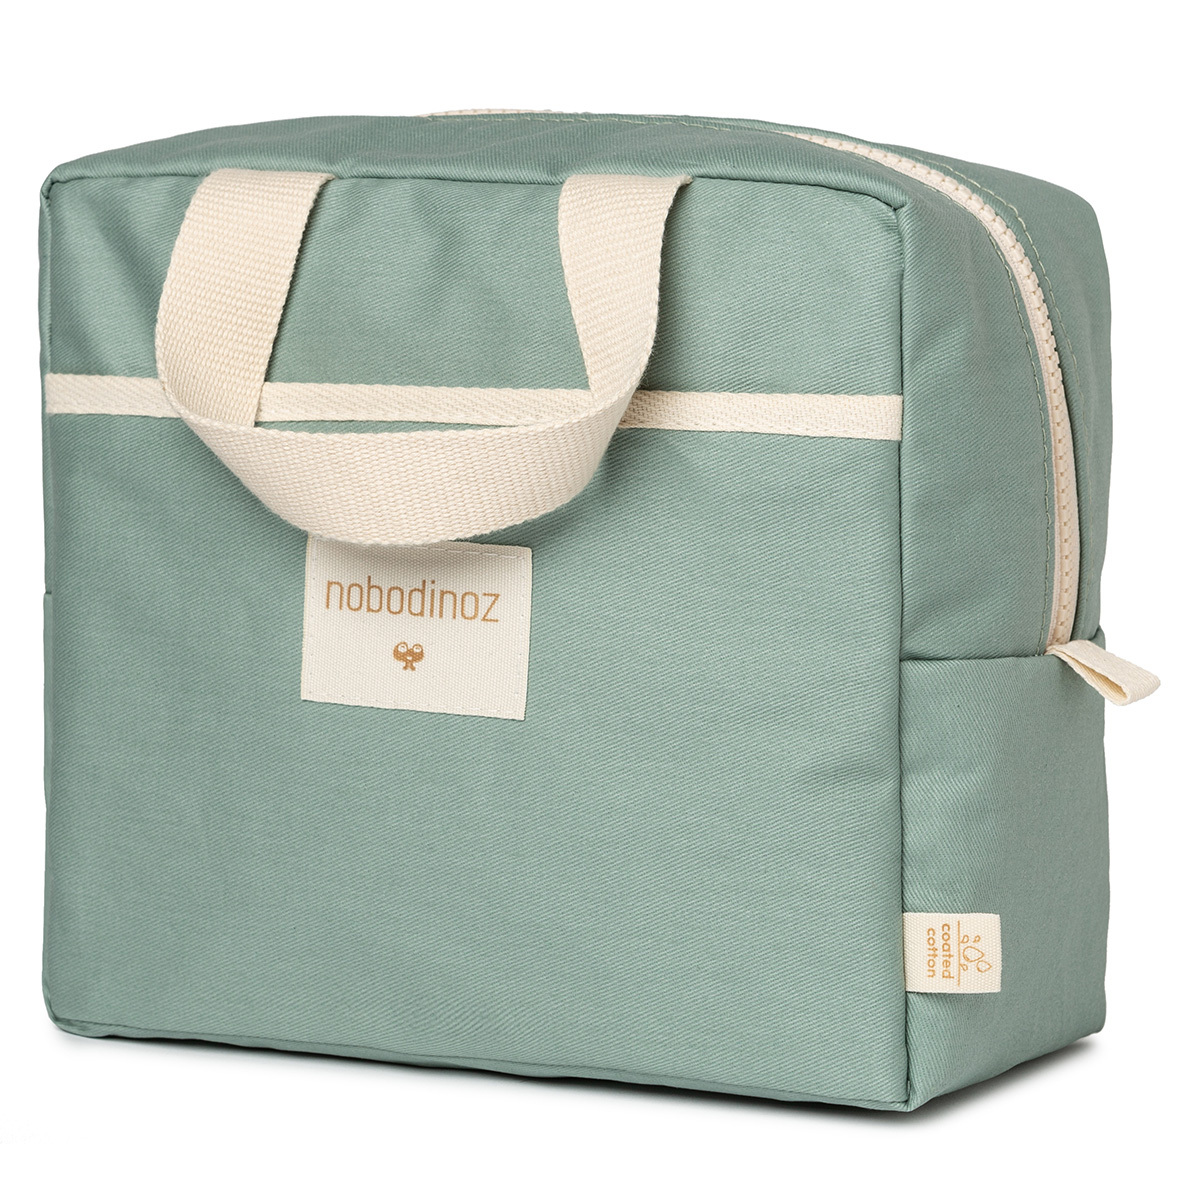 Sac isotherme Sac Lunch Isotherme - Eden Green Sac Lunch Isotherme - Eden Green